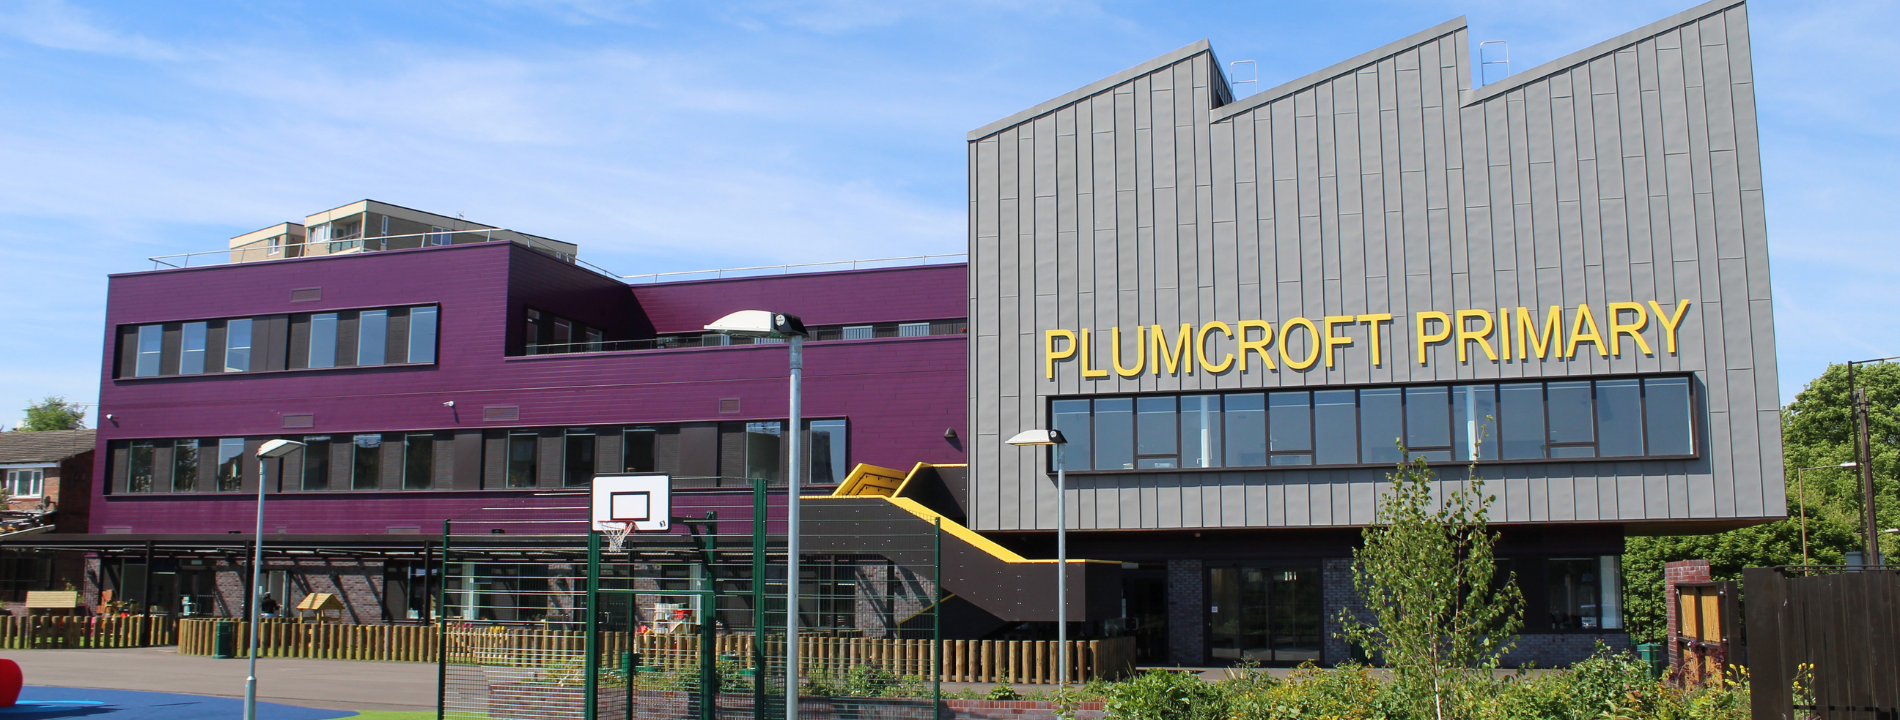 plumcroft primary_homepage slider